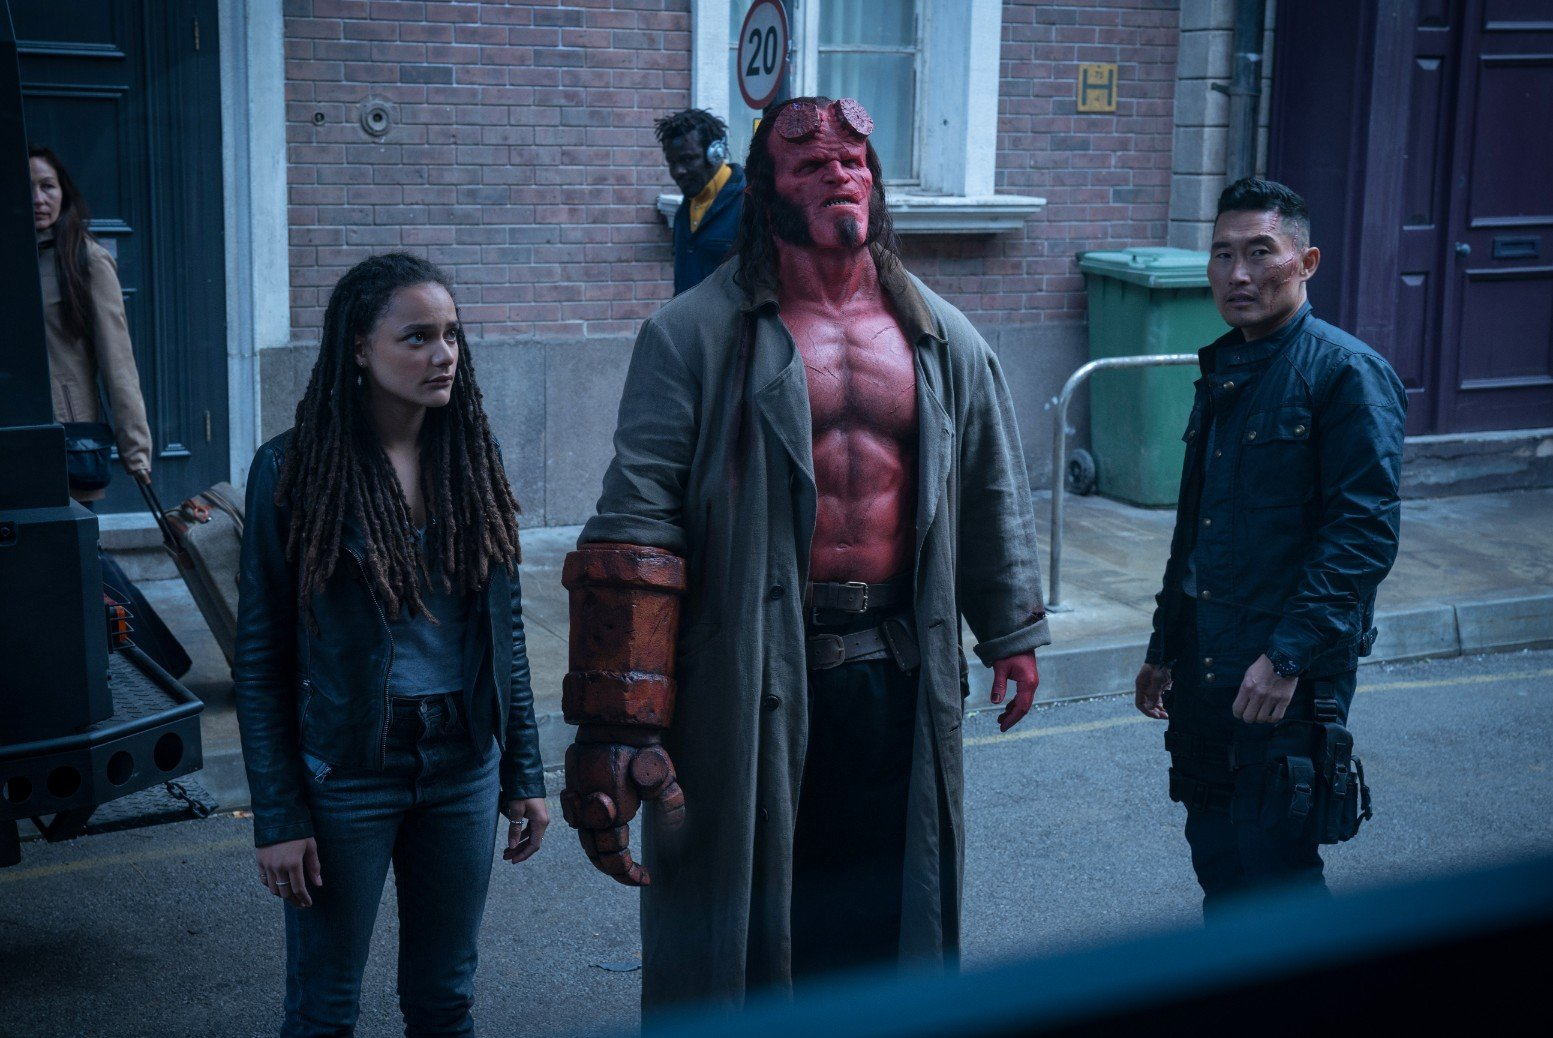 'Hellboy' drops apocalyptic and rather bloody trailer